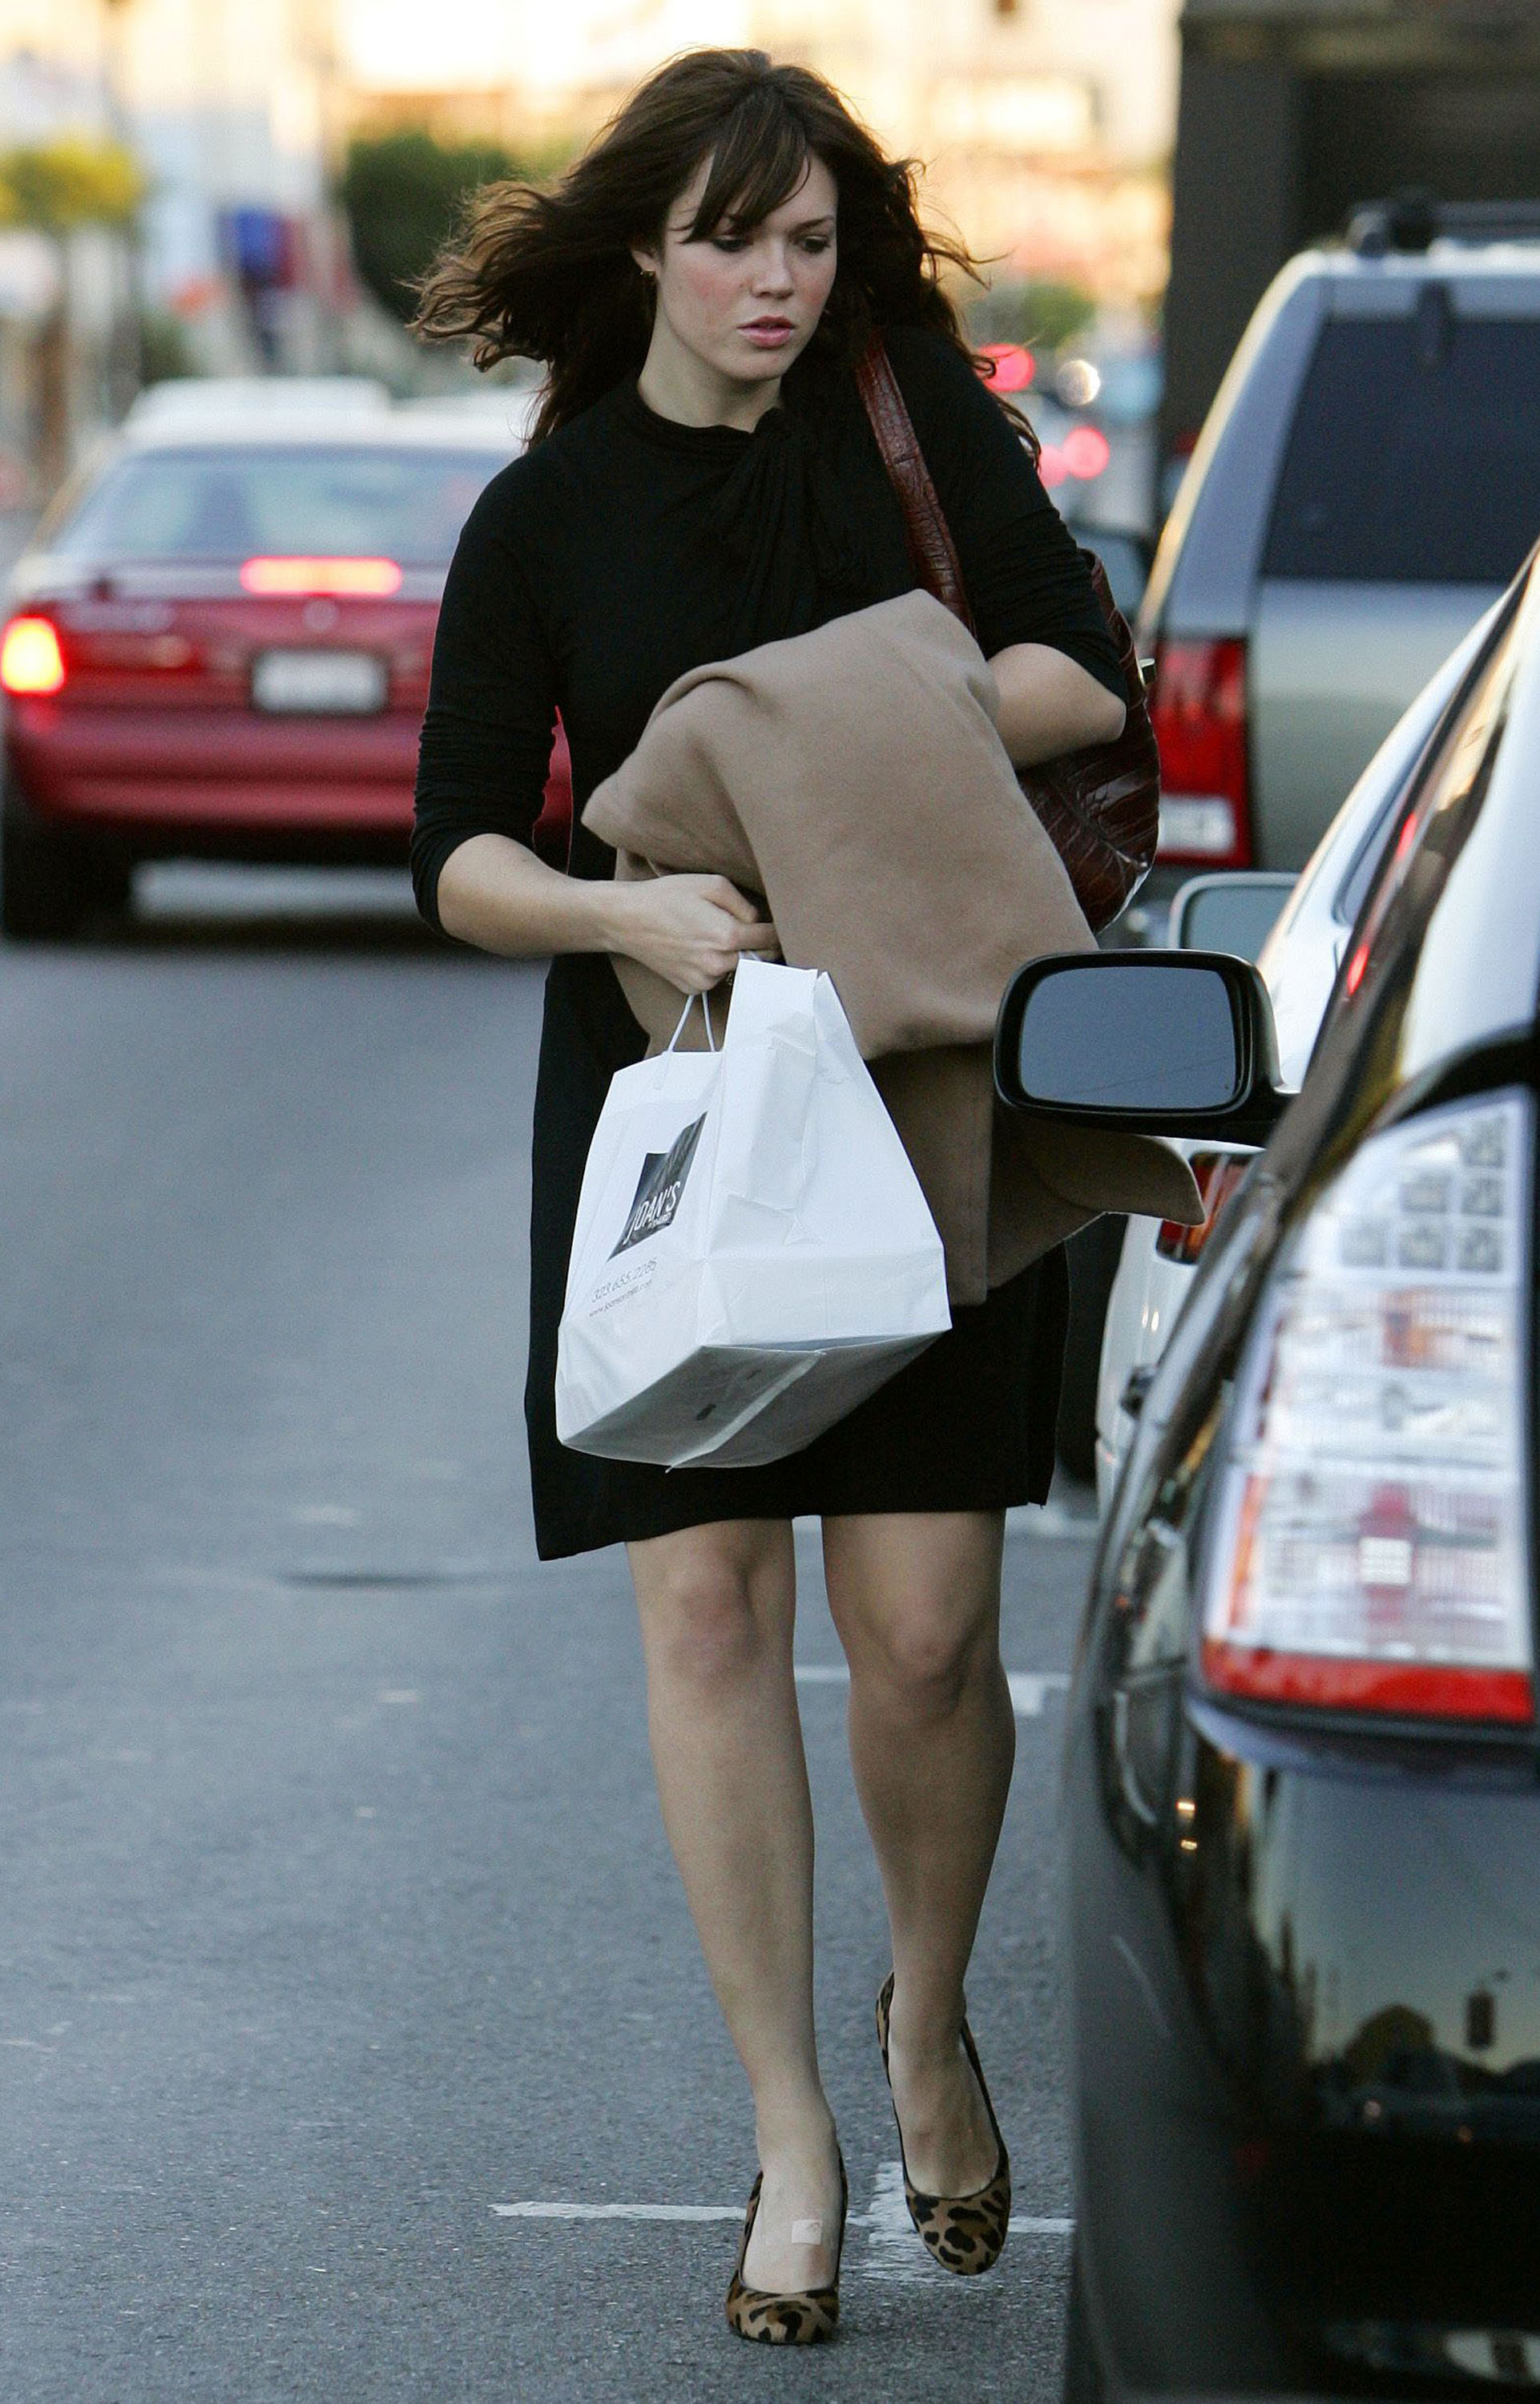 67254_celeb-city.eu_Mandy_Moore_out_and_about_in_West_Hollywood_10.12.2007_08_122_367lo.jpg